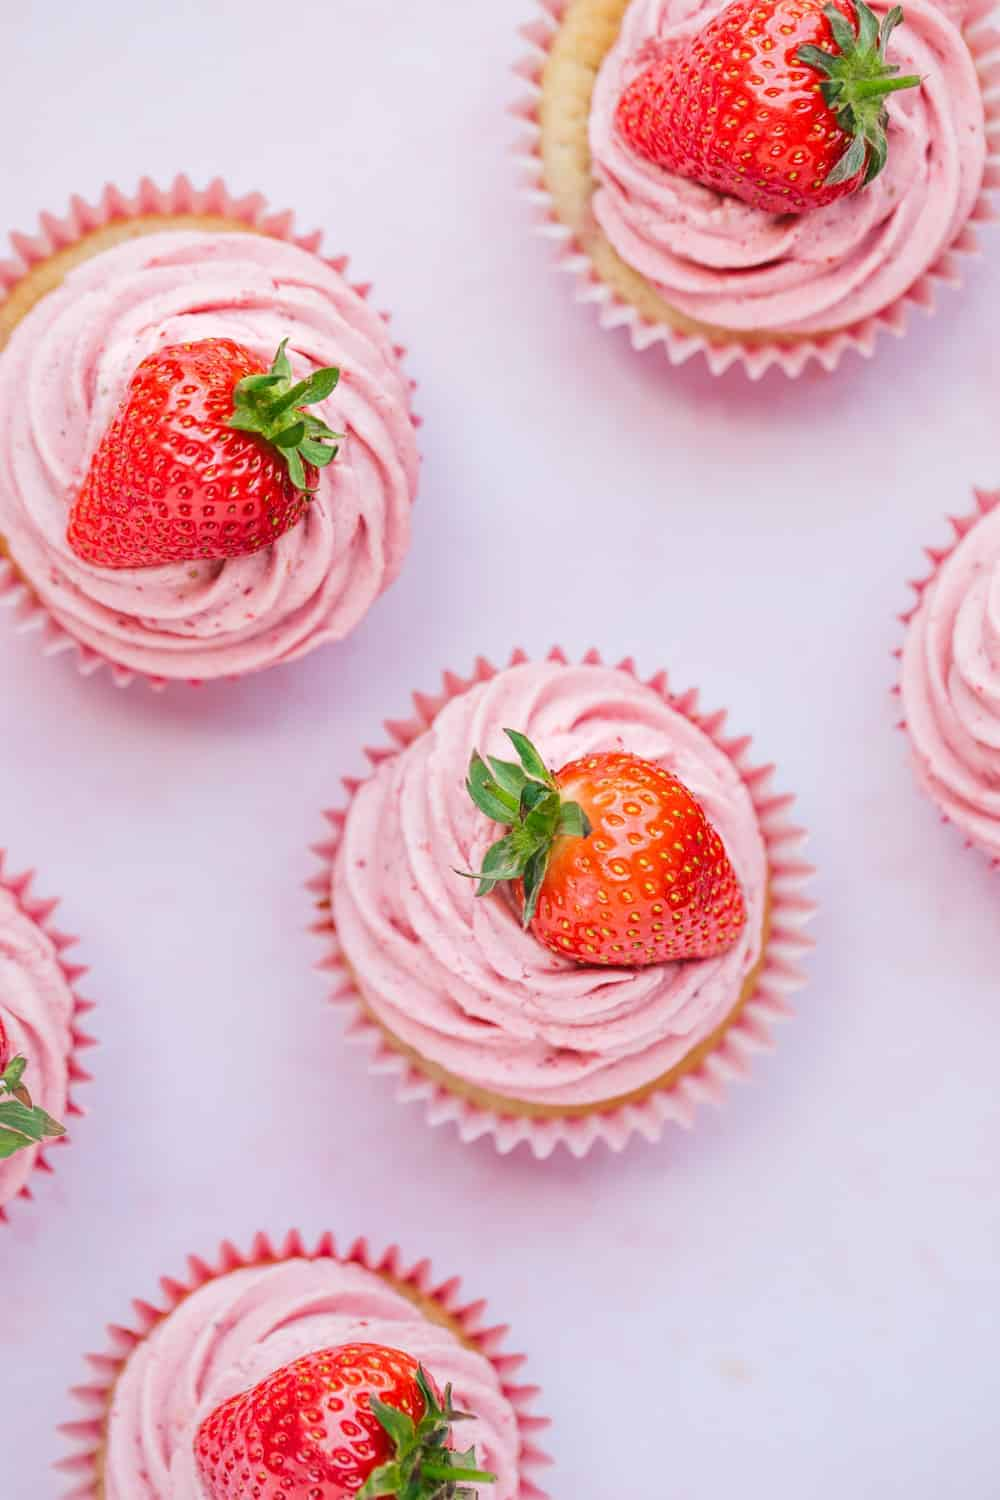 Overhead view of pink strawberry cupcakes